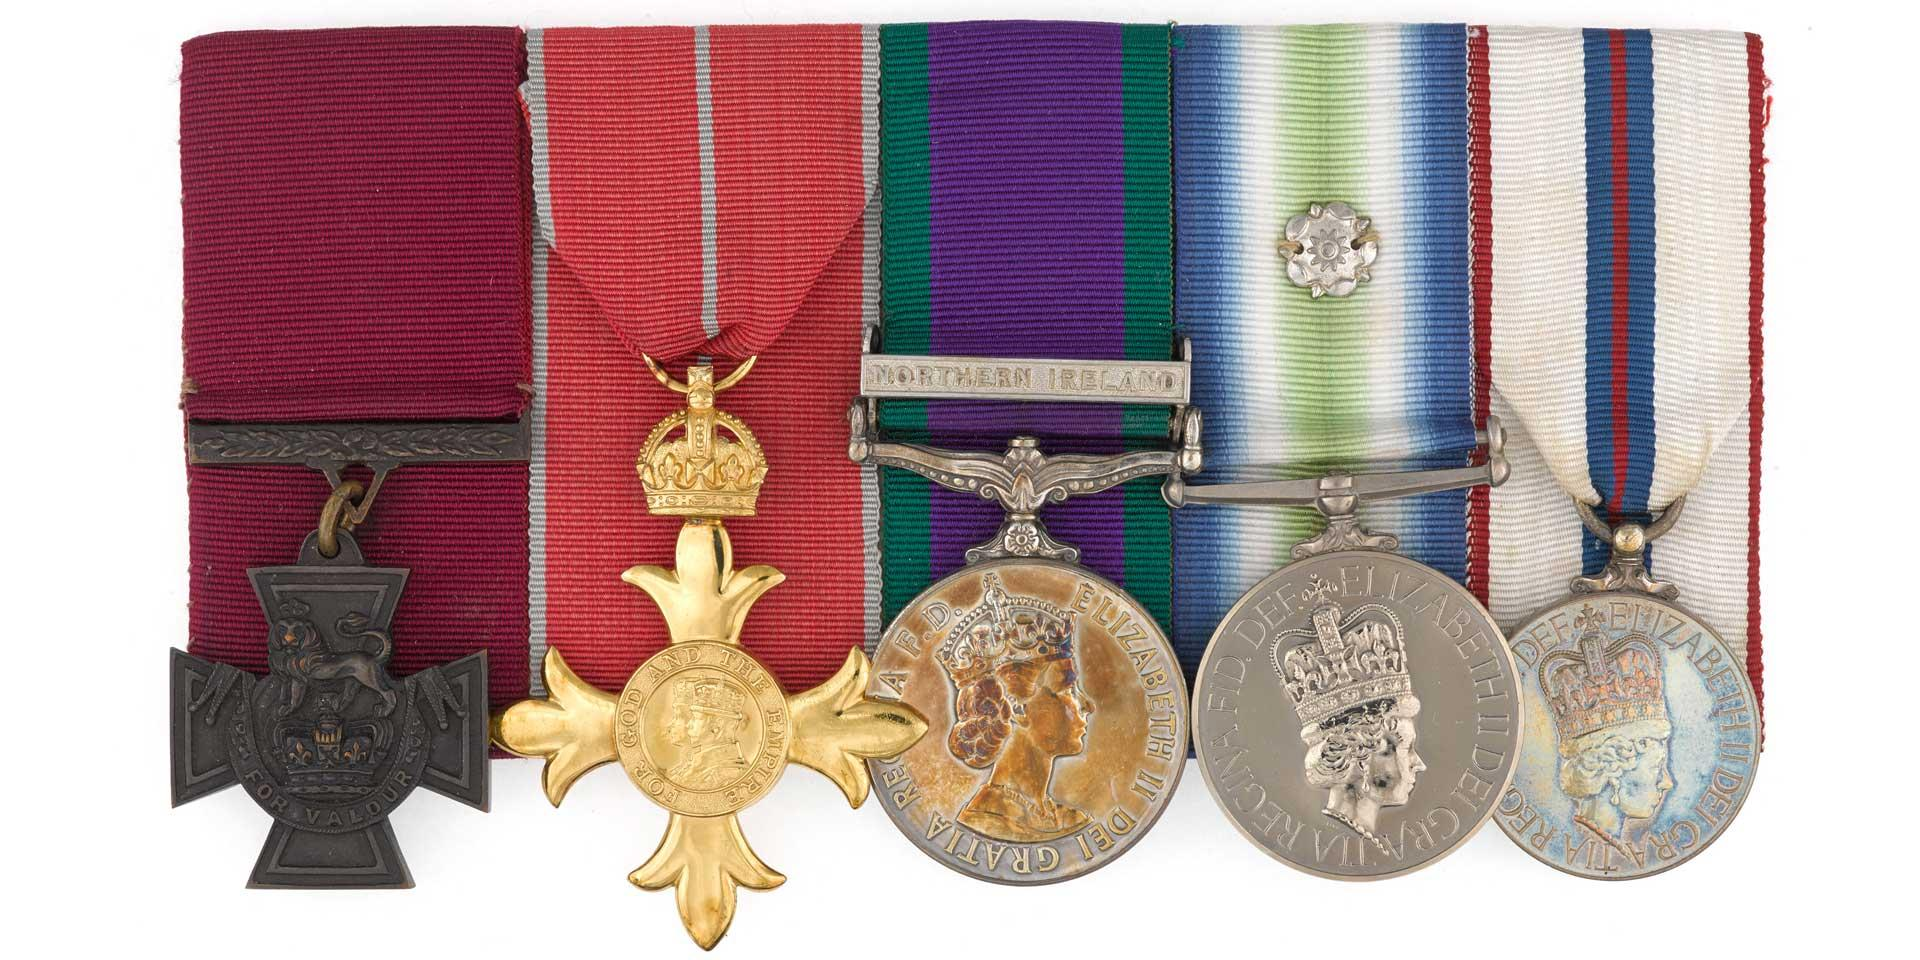 Victoria Cross group awarded to Lieutenant-Colonel Herbert 'H' Jones, 2nd Battalion The Parachute Regiment, 1982